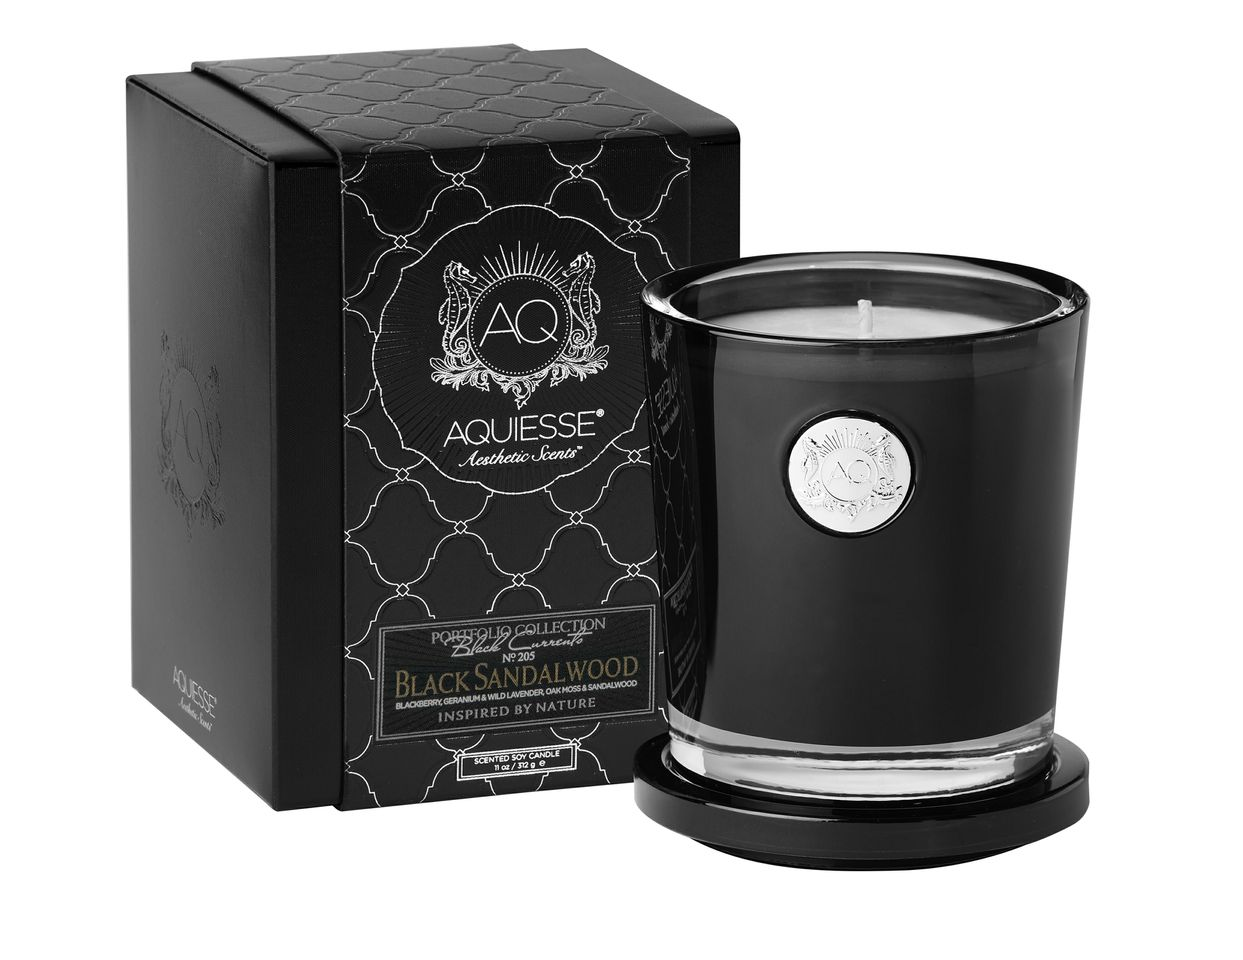 Black Sandalwood Candle in Glass - Aquiesse